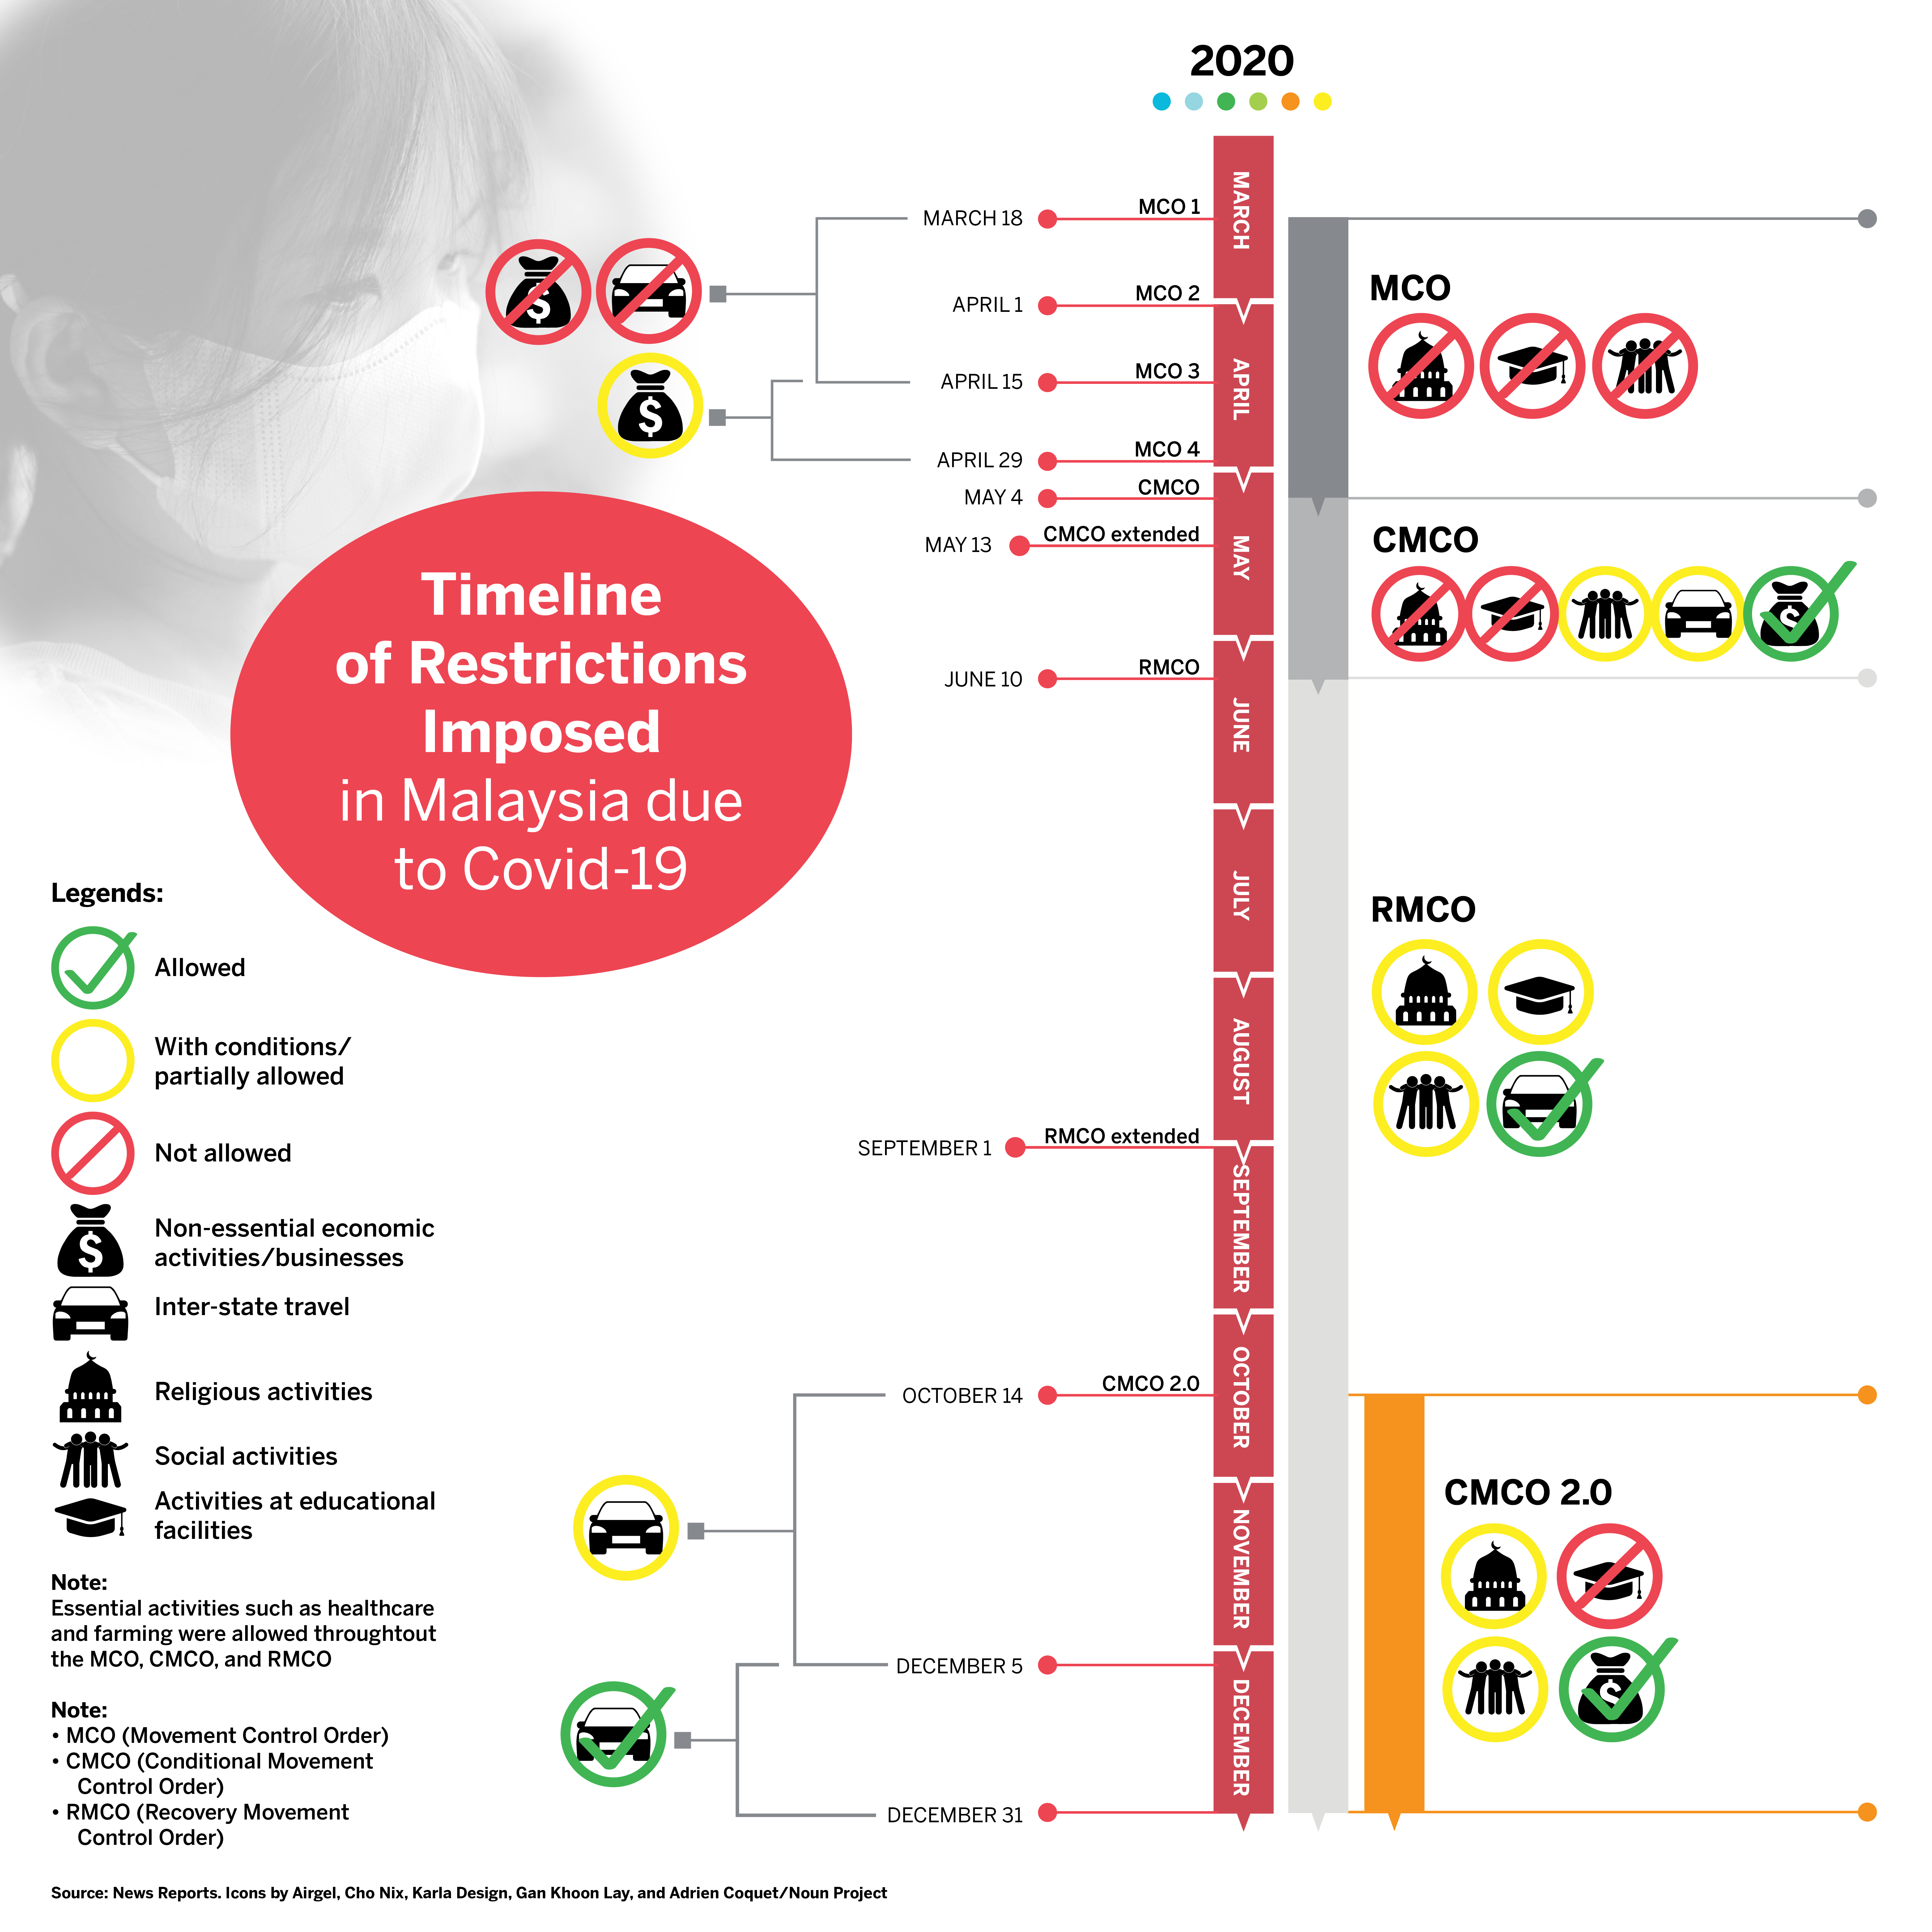 Table 1. Timeline of restrictions imposed in Malaysia due to COVID-19. CREDIT: Malay Mail.